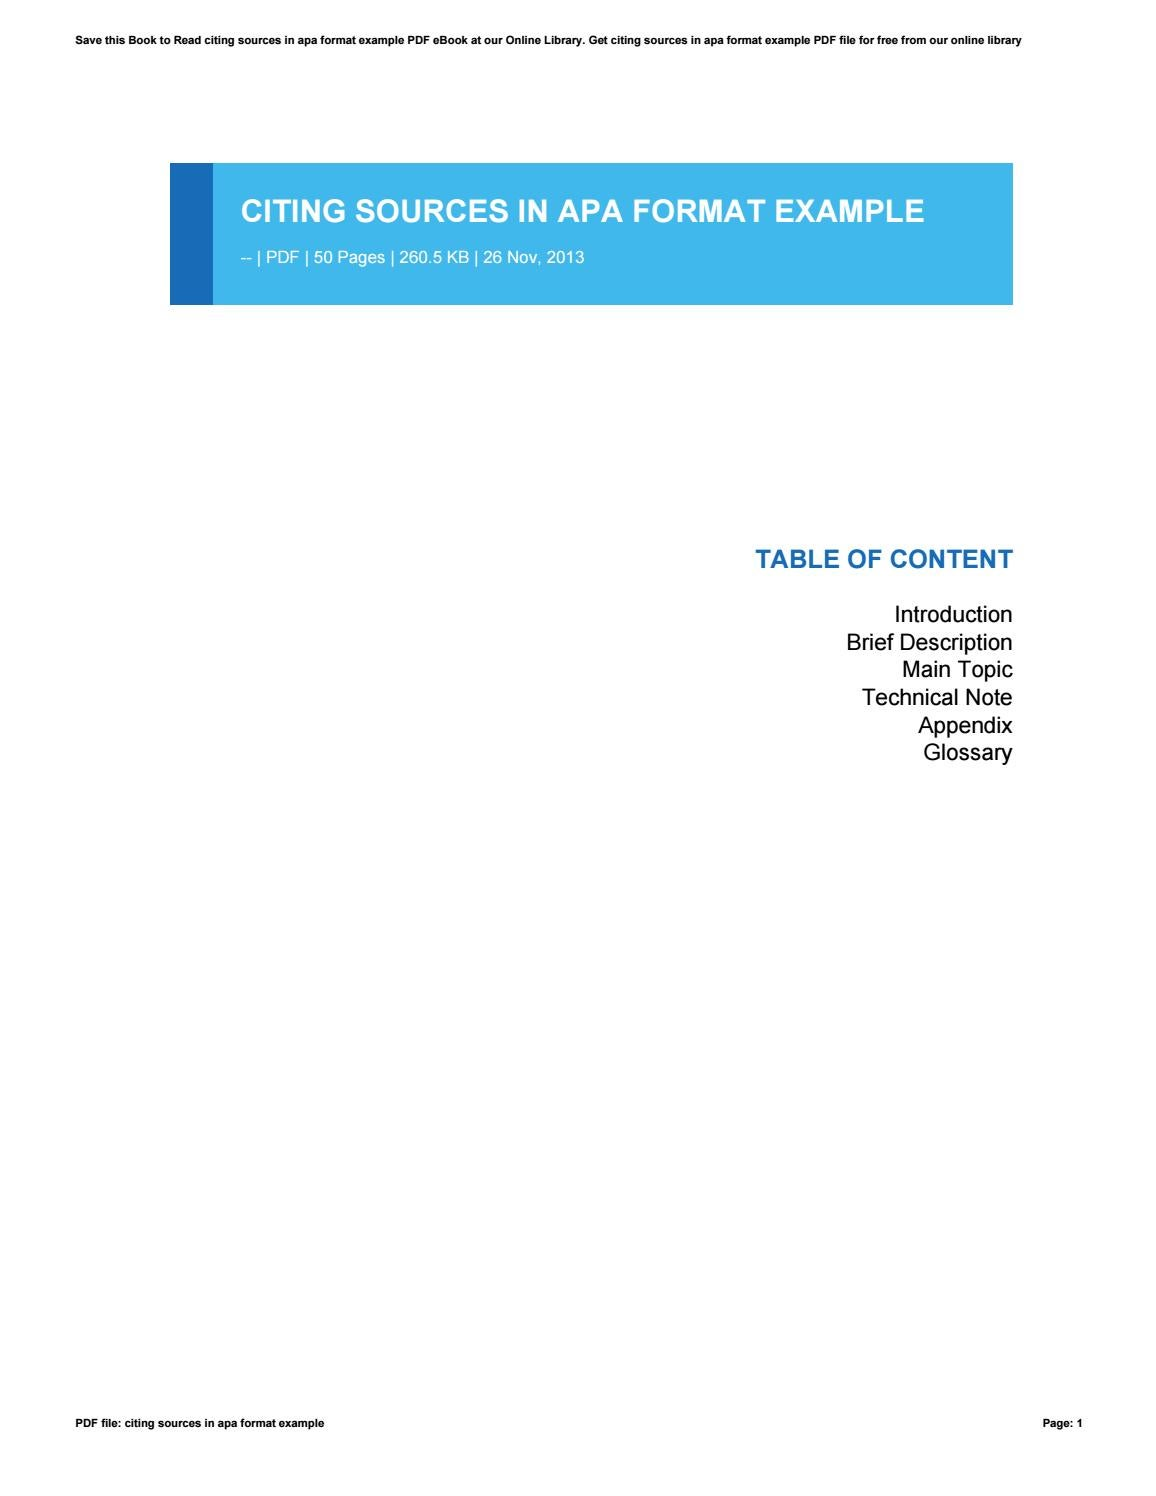 Citing sources in apa format example by webide06 - issuu